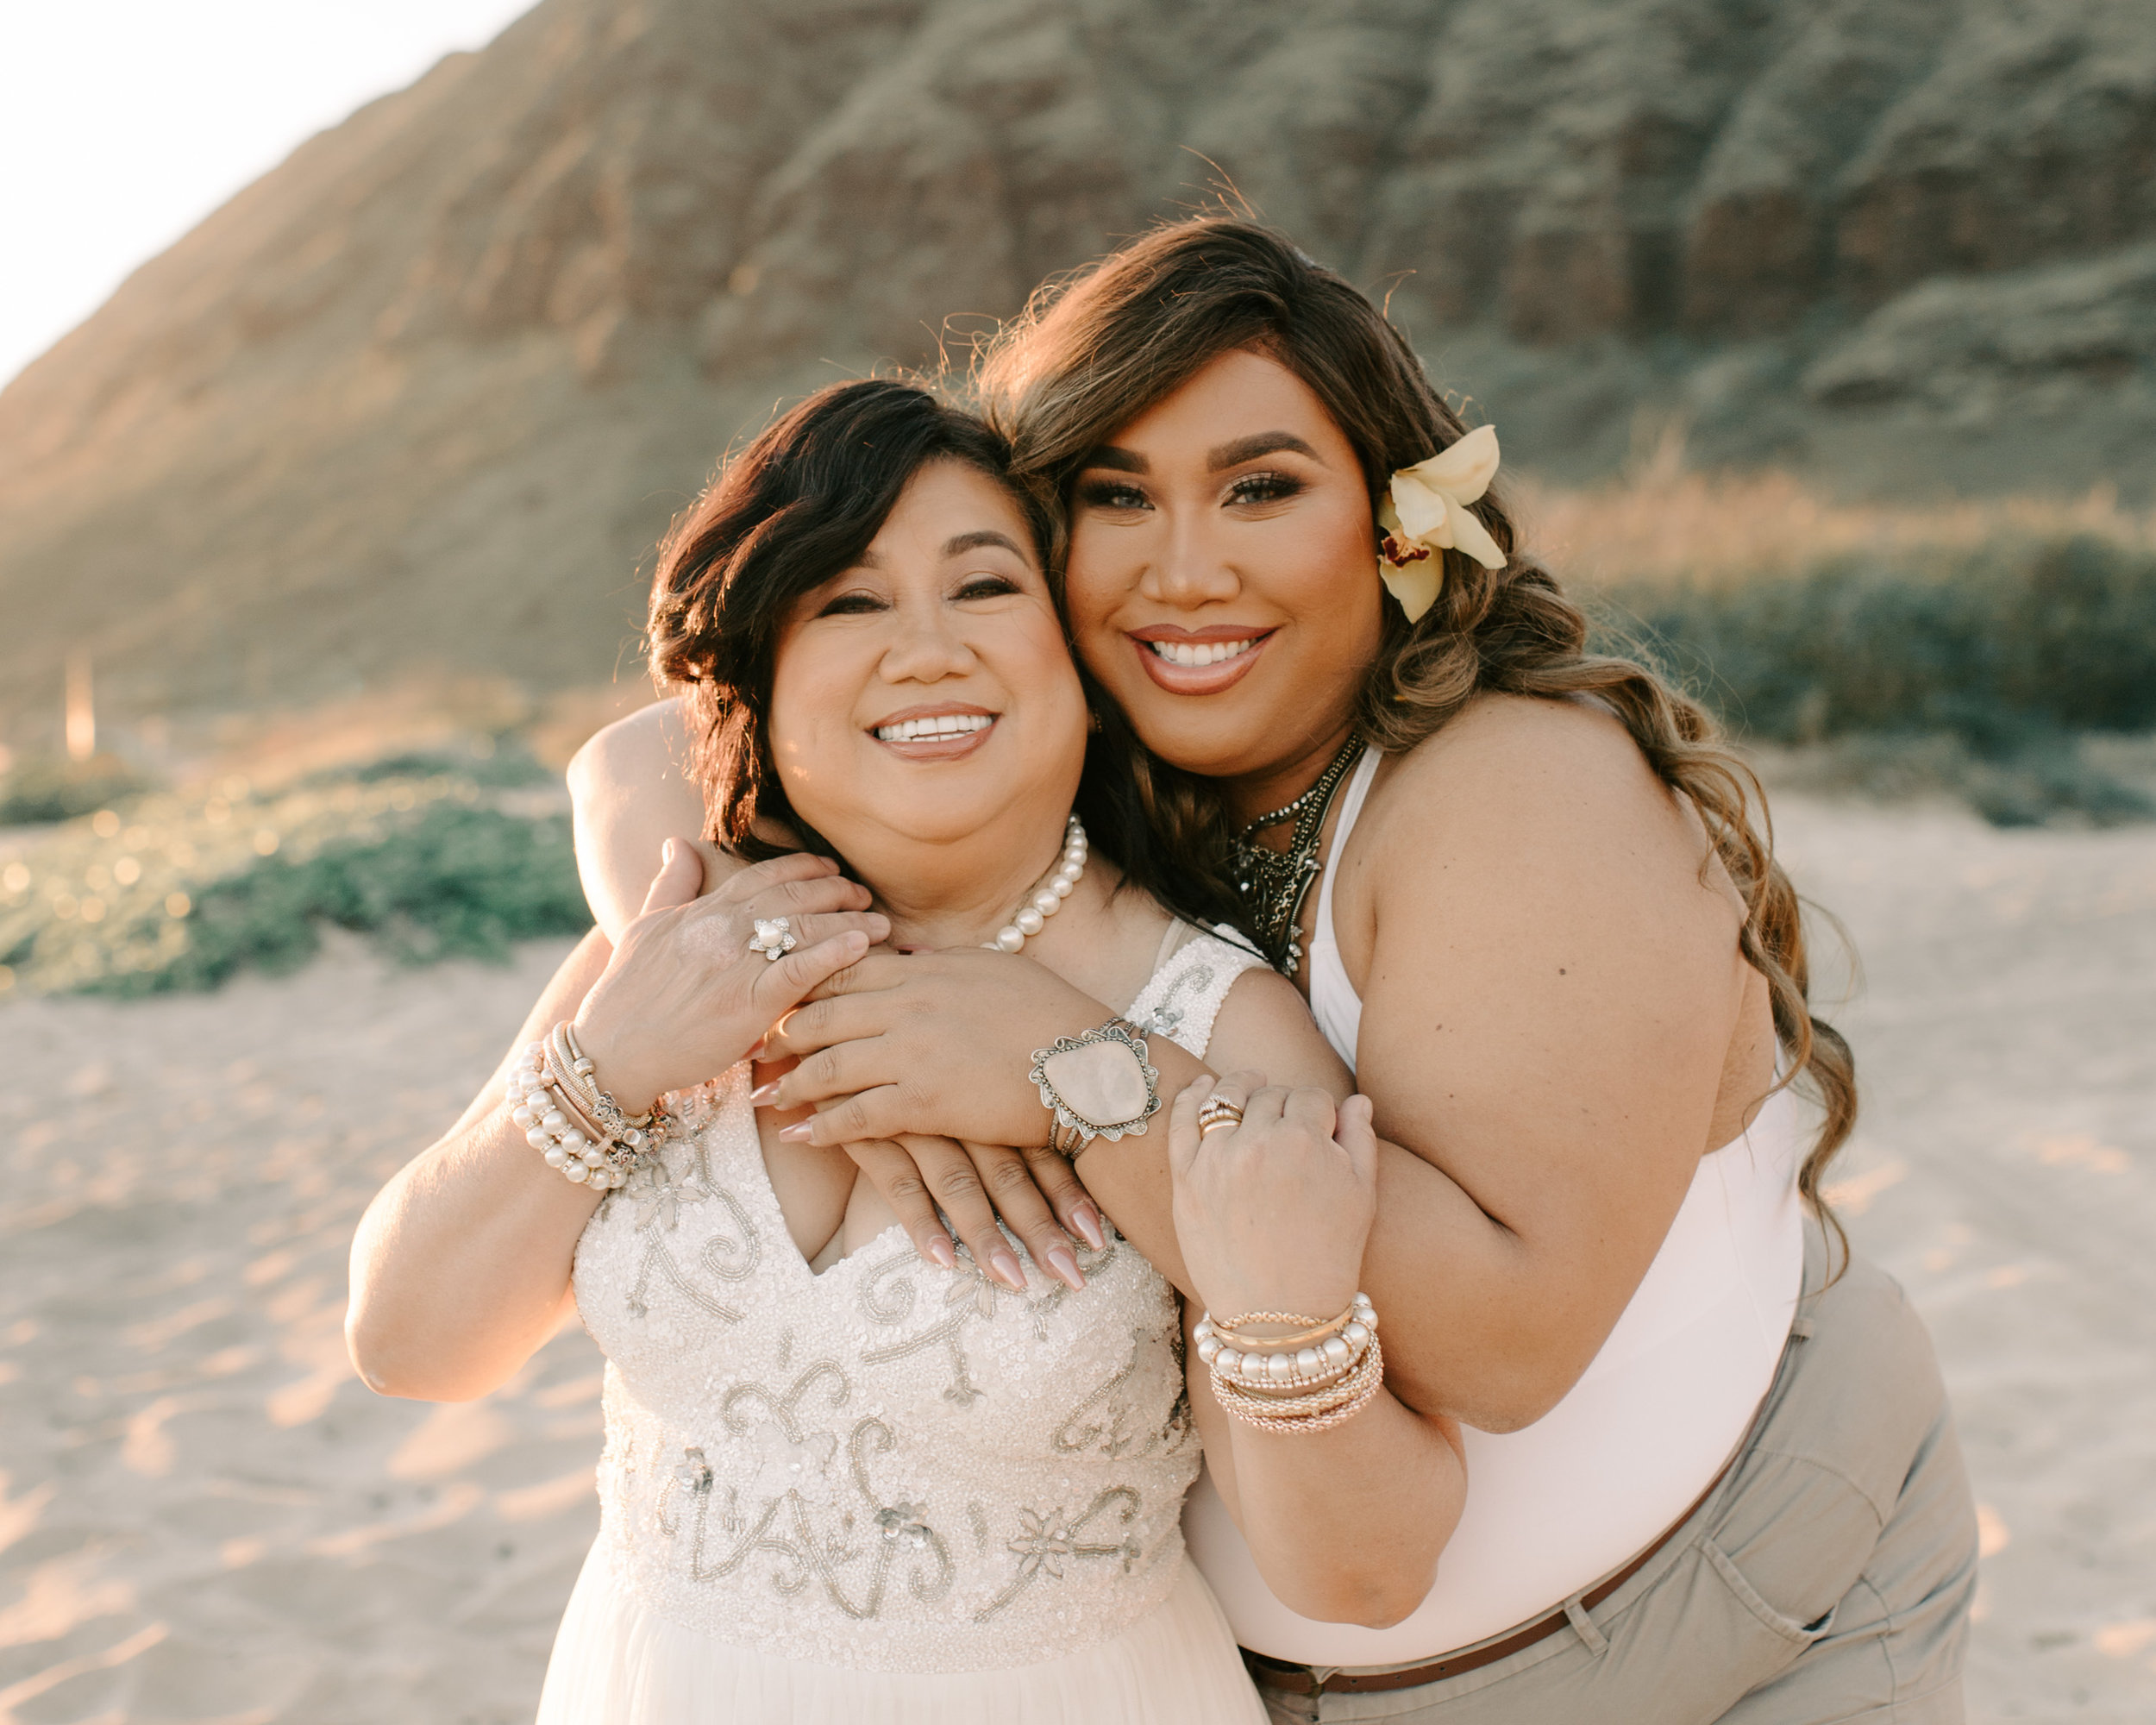 Patrick Starrr and Mama Starrr Family Photos in Hawaii by Oahu Family Photographer Desiree Leilani